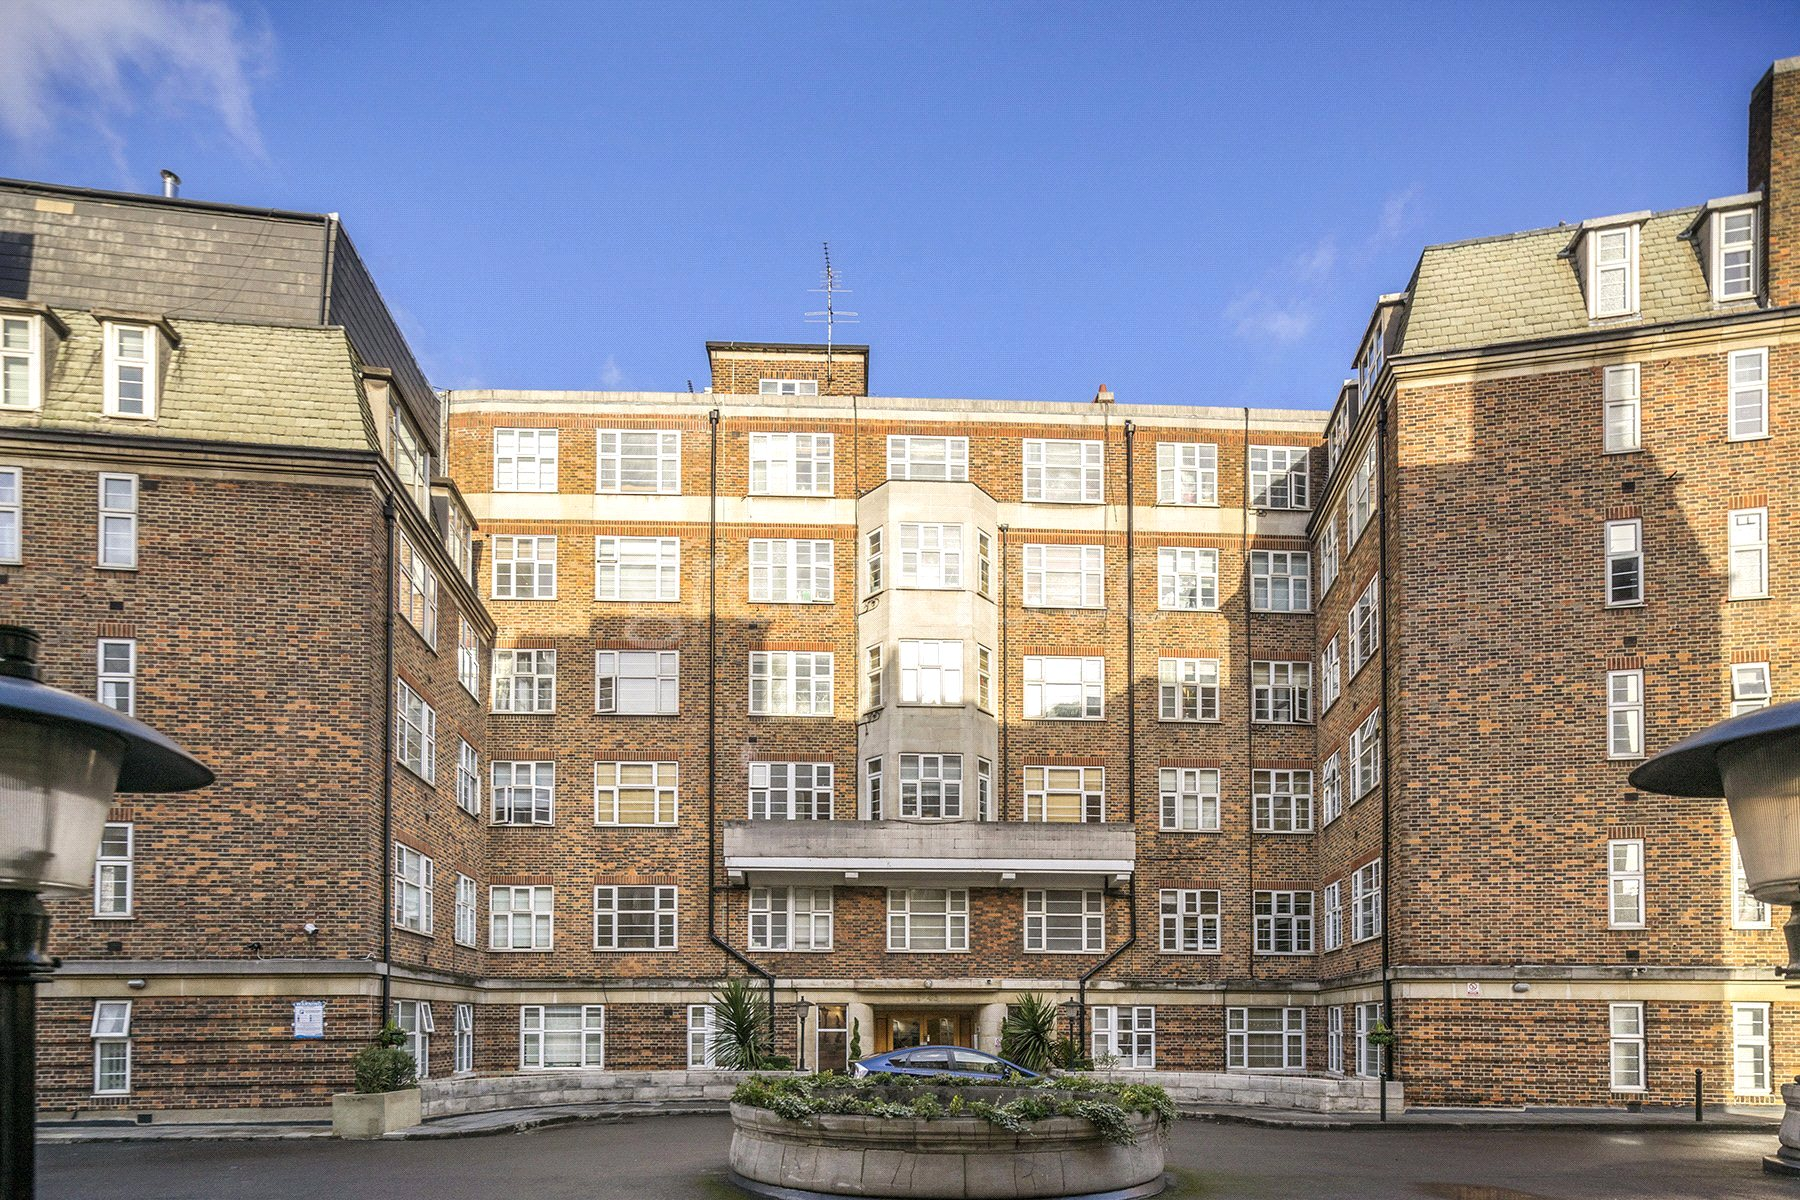 2 Bedrooms Flat for sale in Northways, College Crescent, Belsize Park, London, NW3